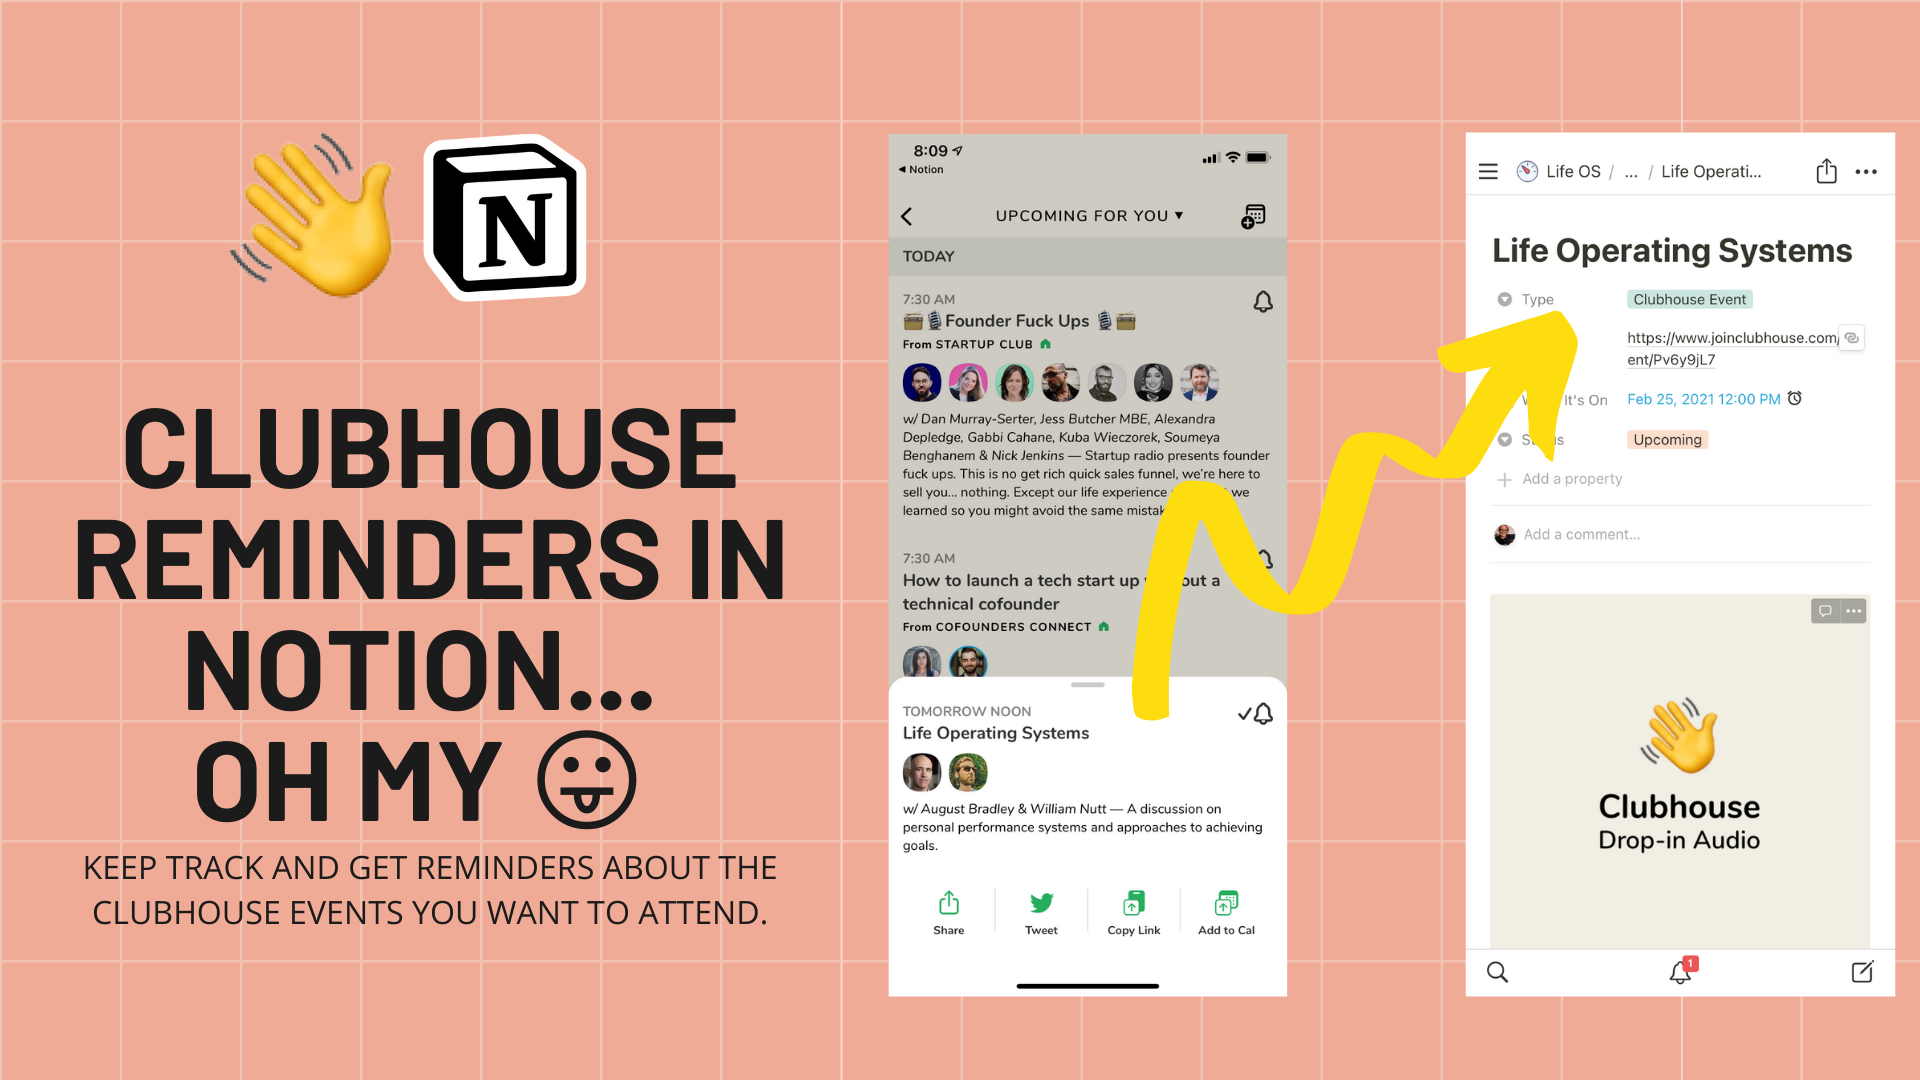 Get Clubhouse Event Reminders in Notion